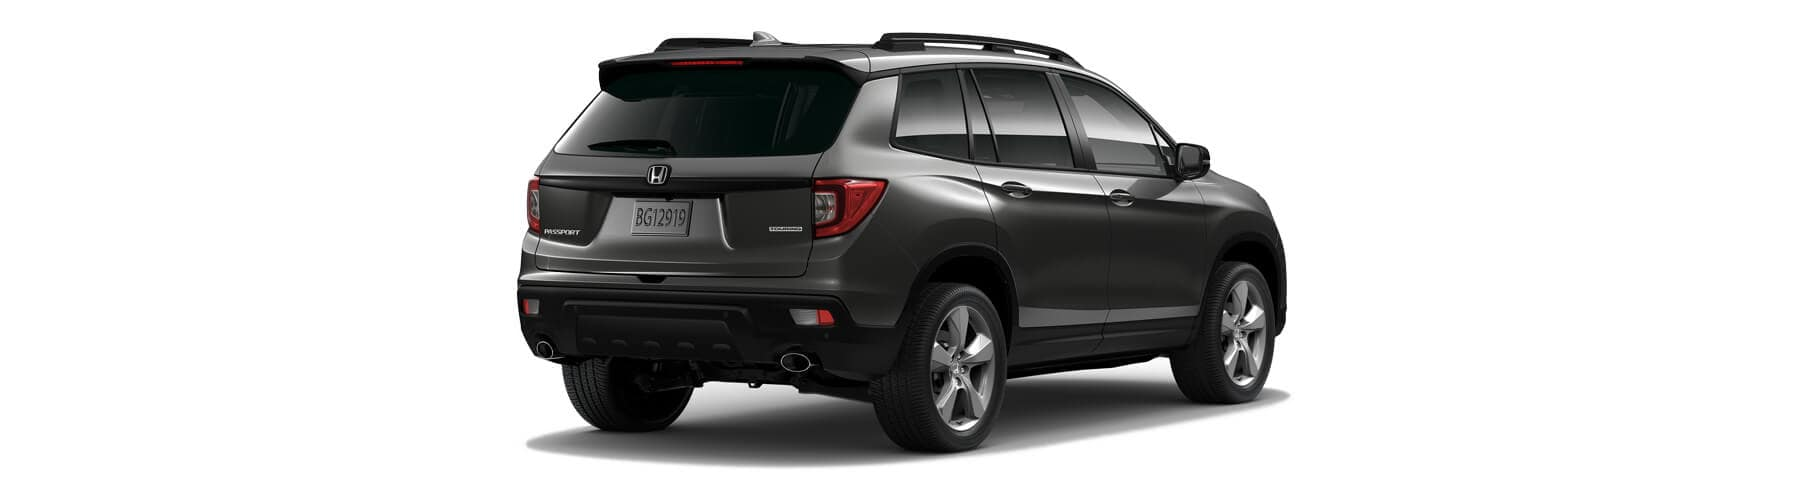 2019 Honda Passport Rear Angle